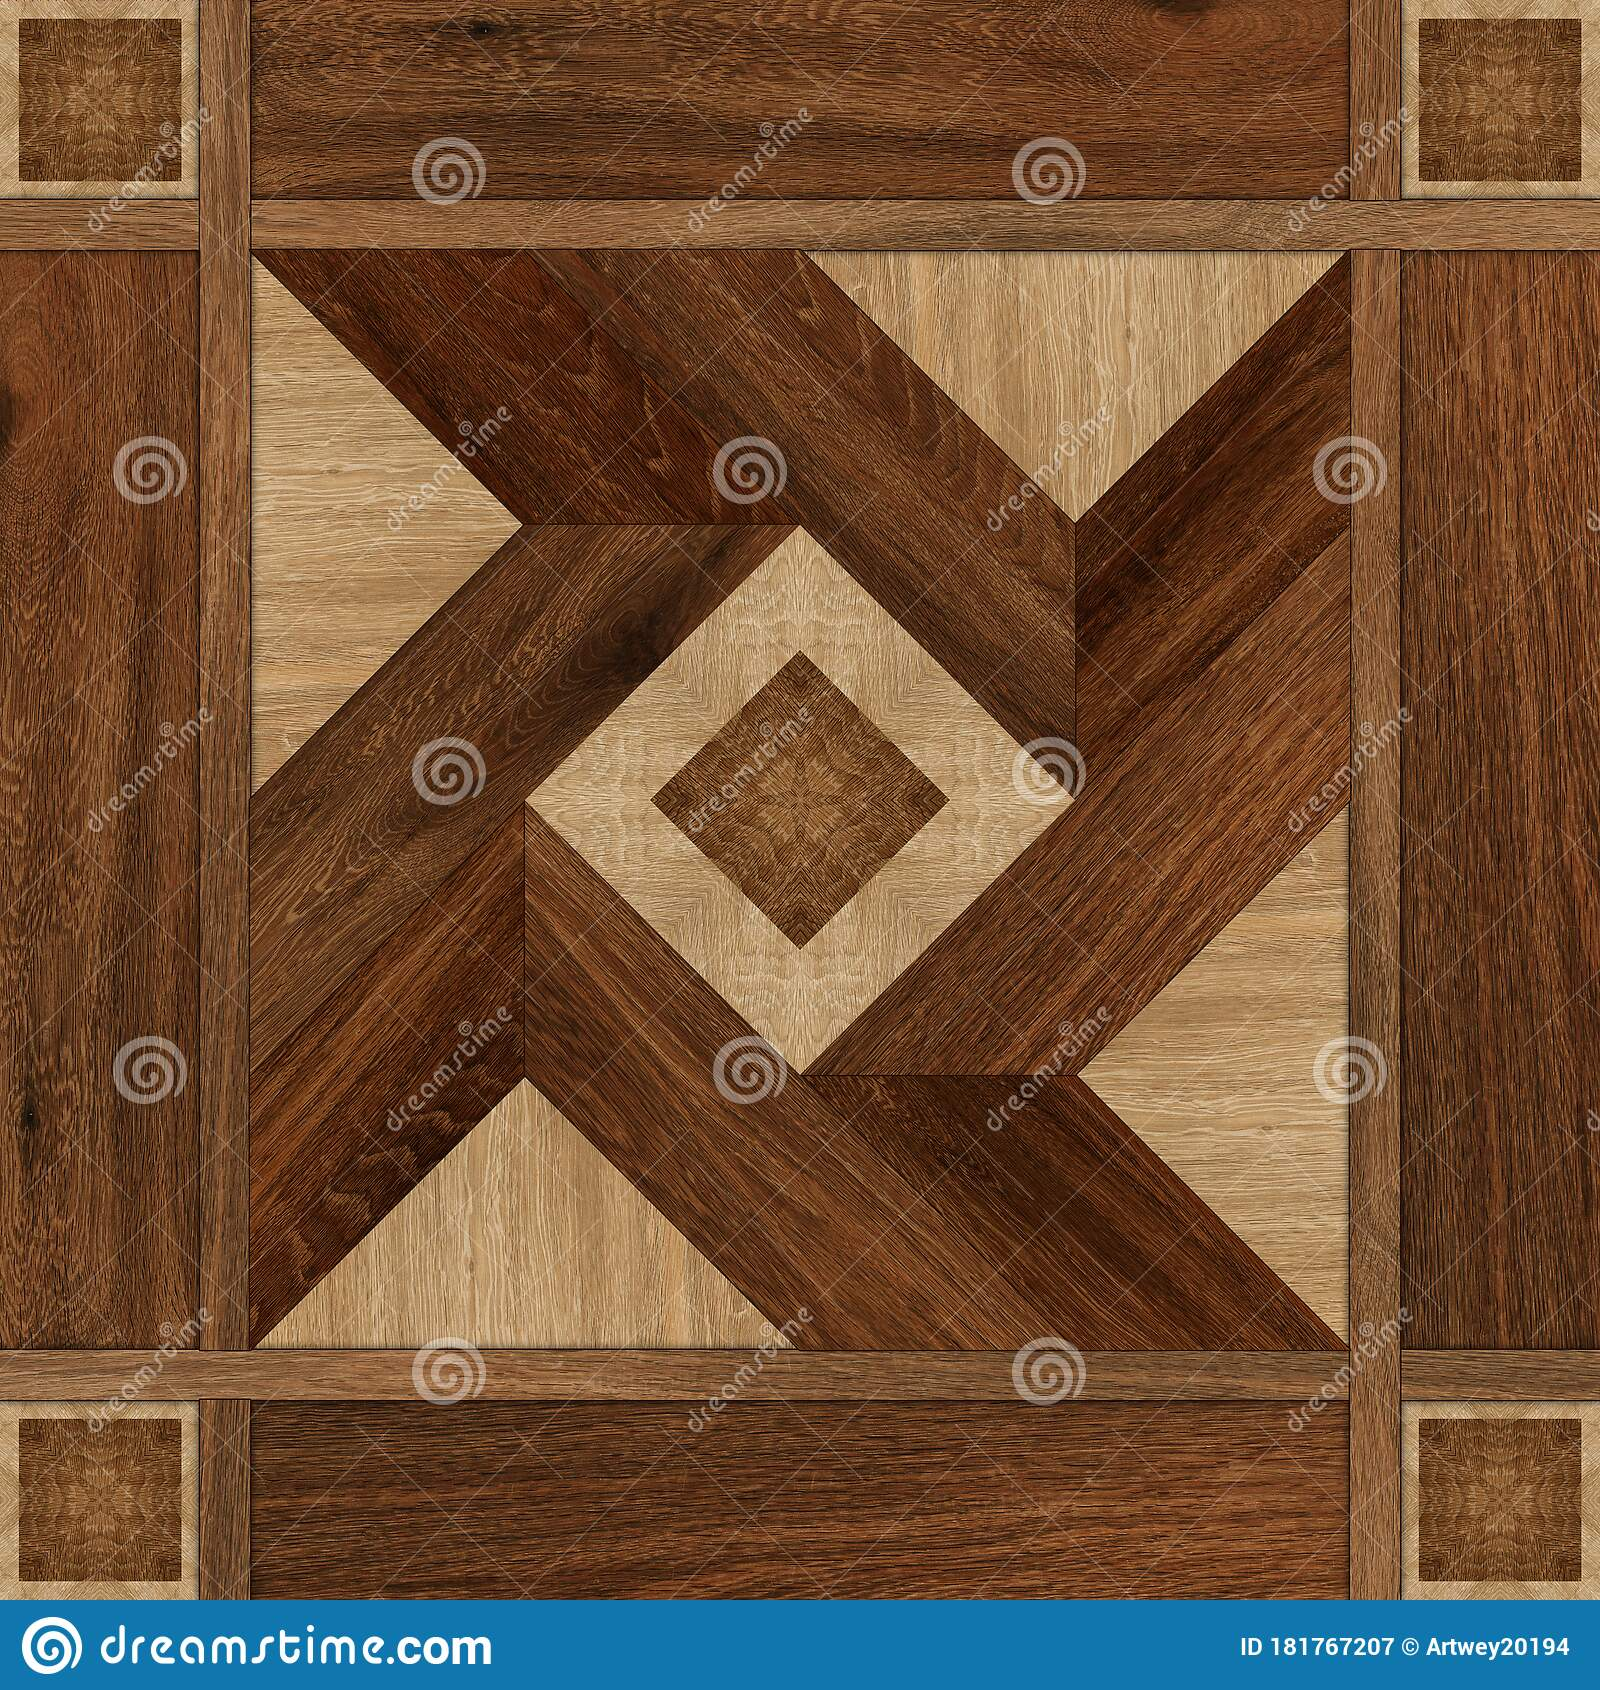 Wooden Decorative Texture Floor Tile Floor Wooden Pattern Ceramic Tile Stock Image Image Of Seamless Pattern 181767207